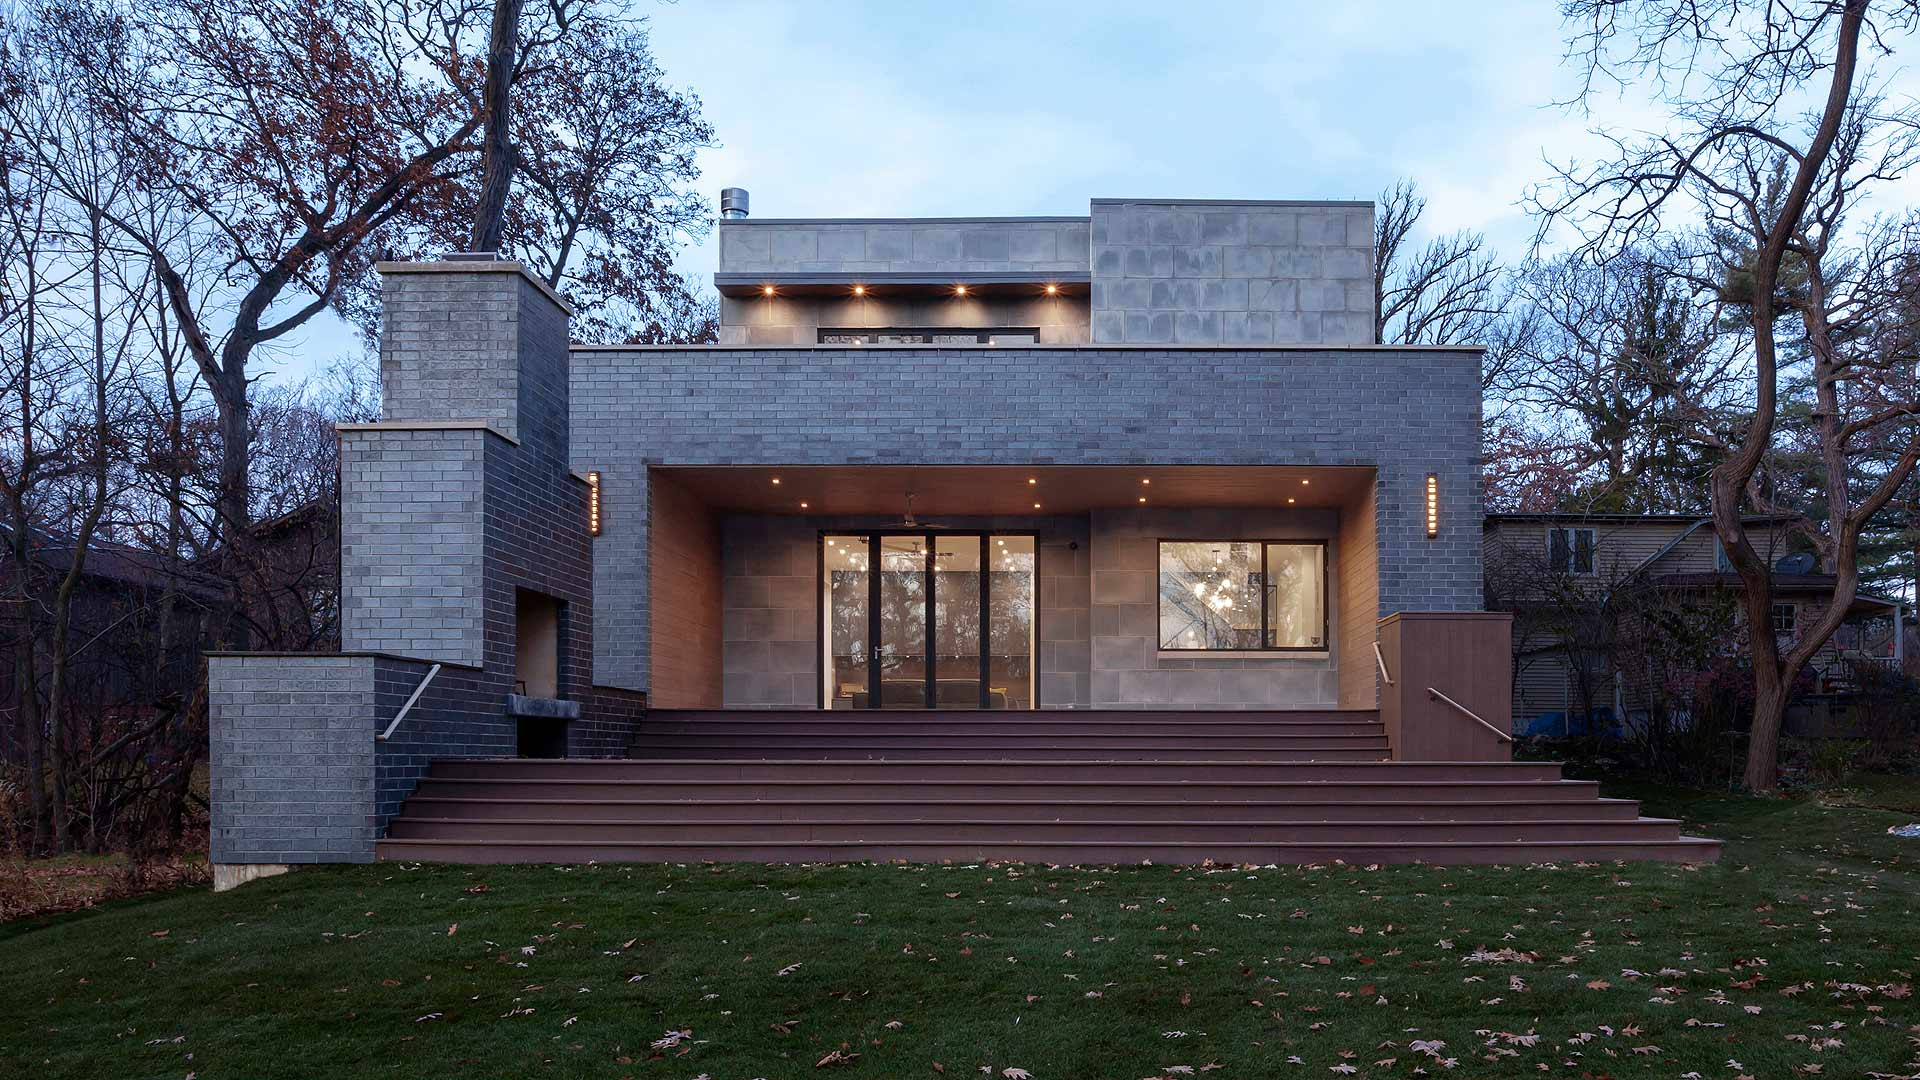 Rear Exterior Elevation includes roof deck, back deck with fireplace, and sliding Nanwall - Minimalist Modern - Indian Head Park - Chicago, Illinois - HAUS | Architecture For Modern Lifestyles, Christopher Short, Indianapolis Architect with Joe Trojanowski